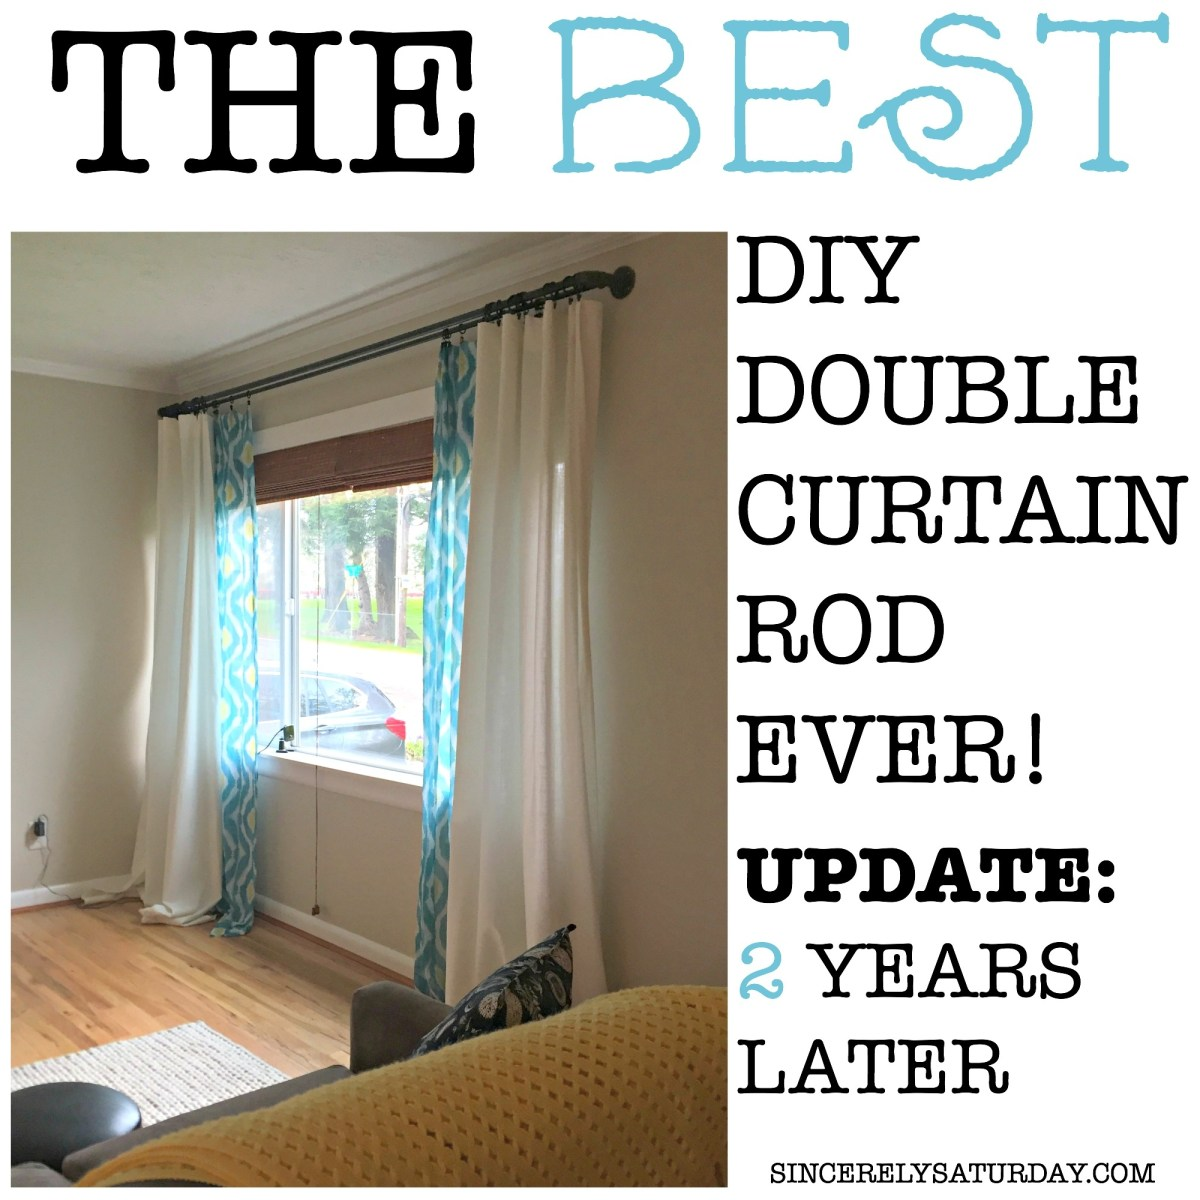 BEST DIY DOUBLE CURTAIN ROD EVER! - 2 YEARS LATER